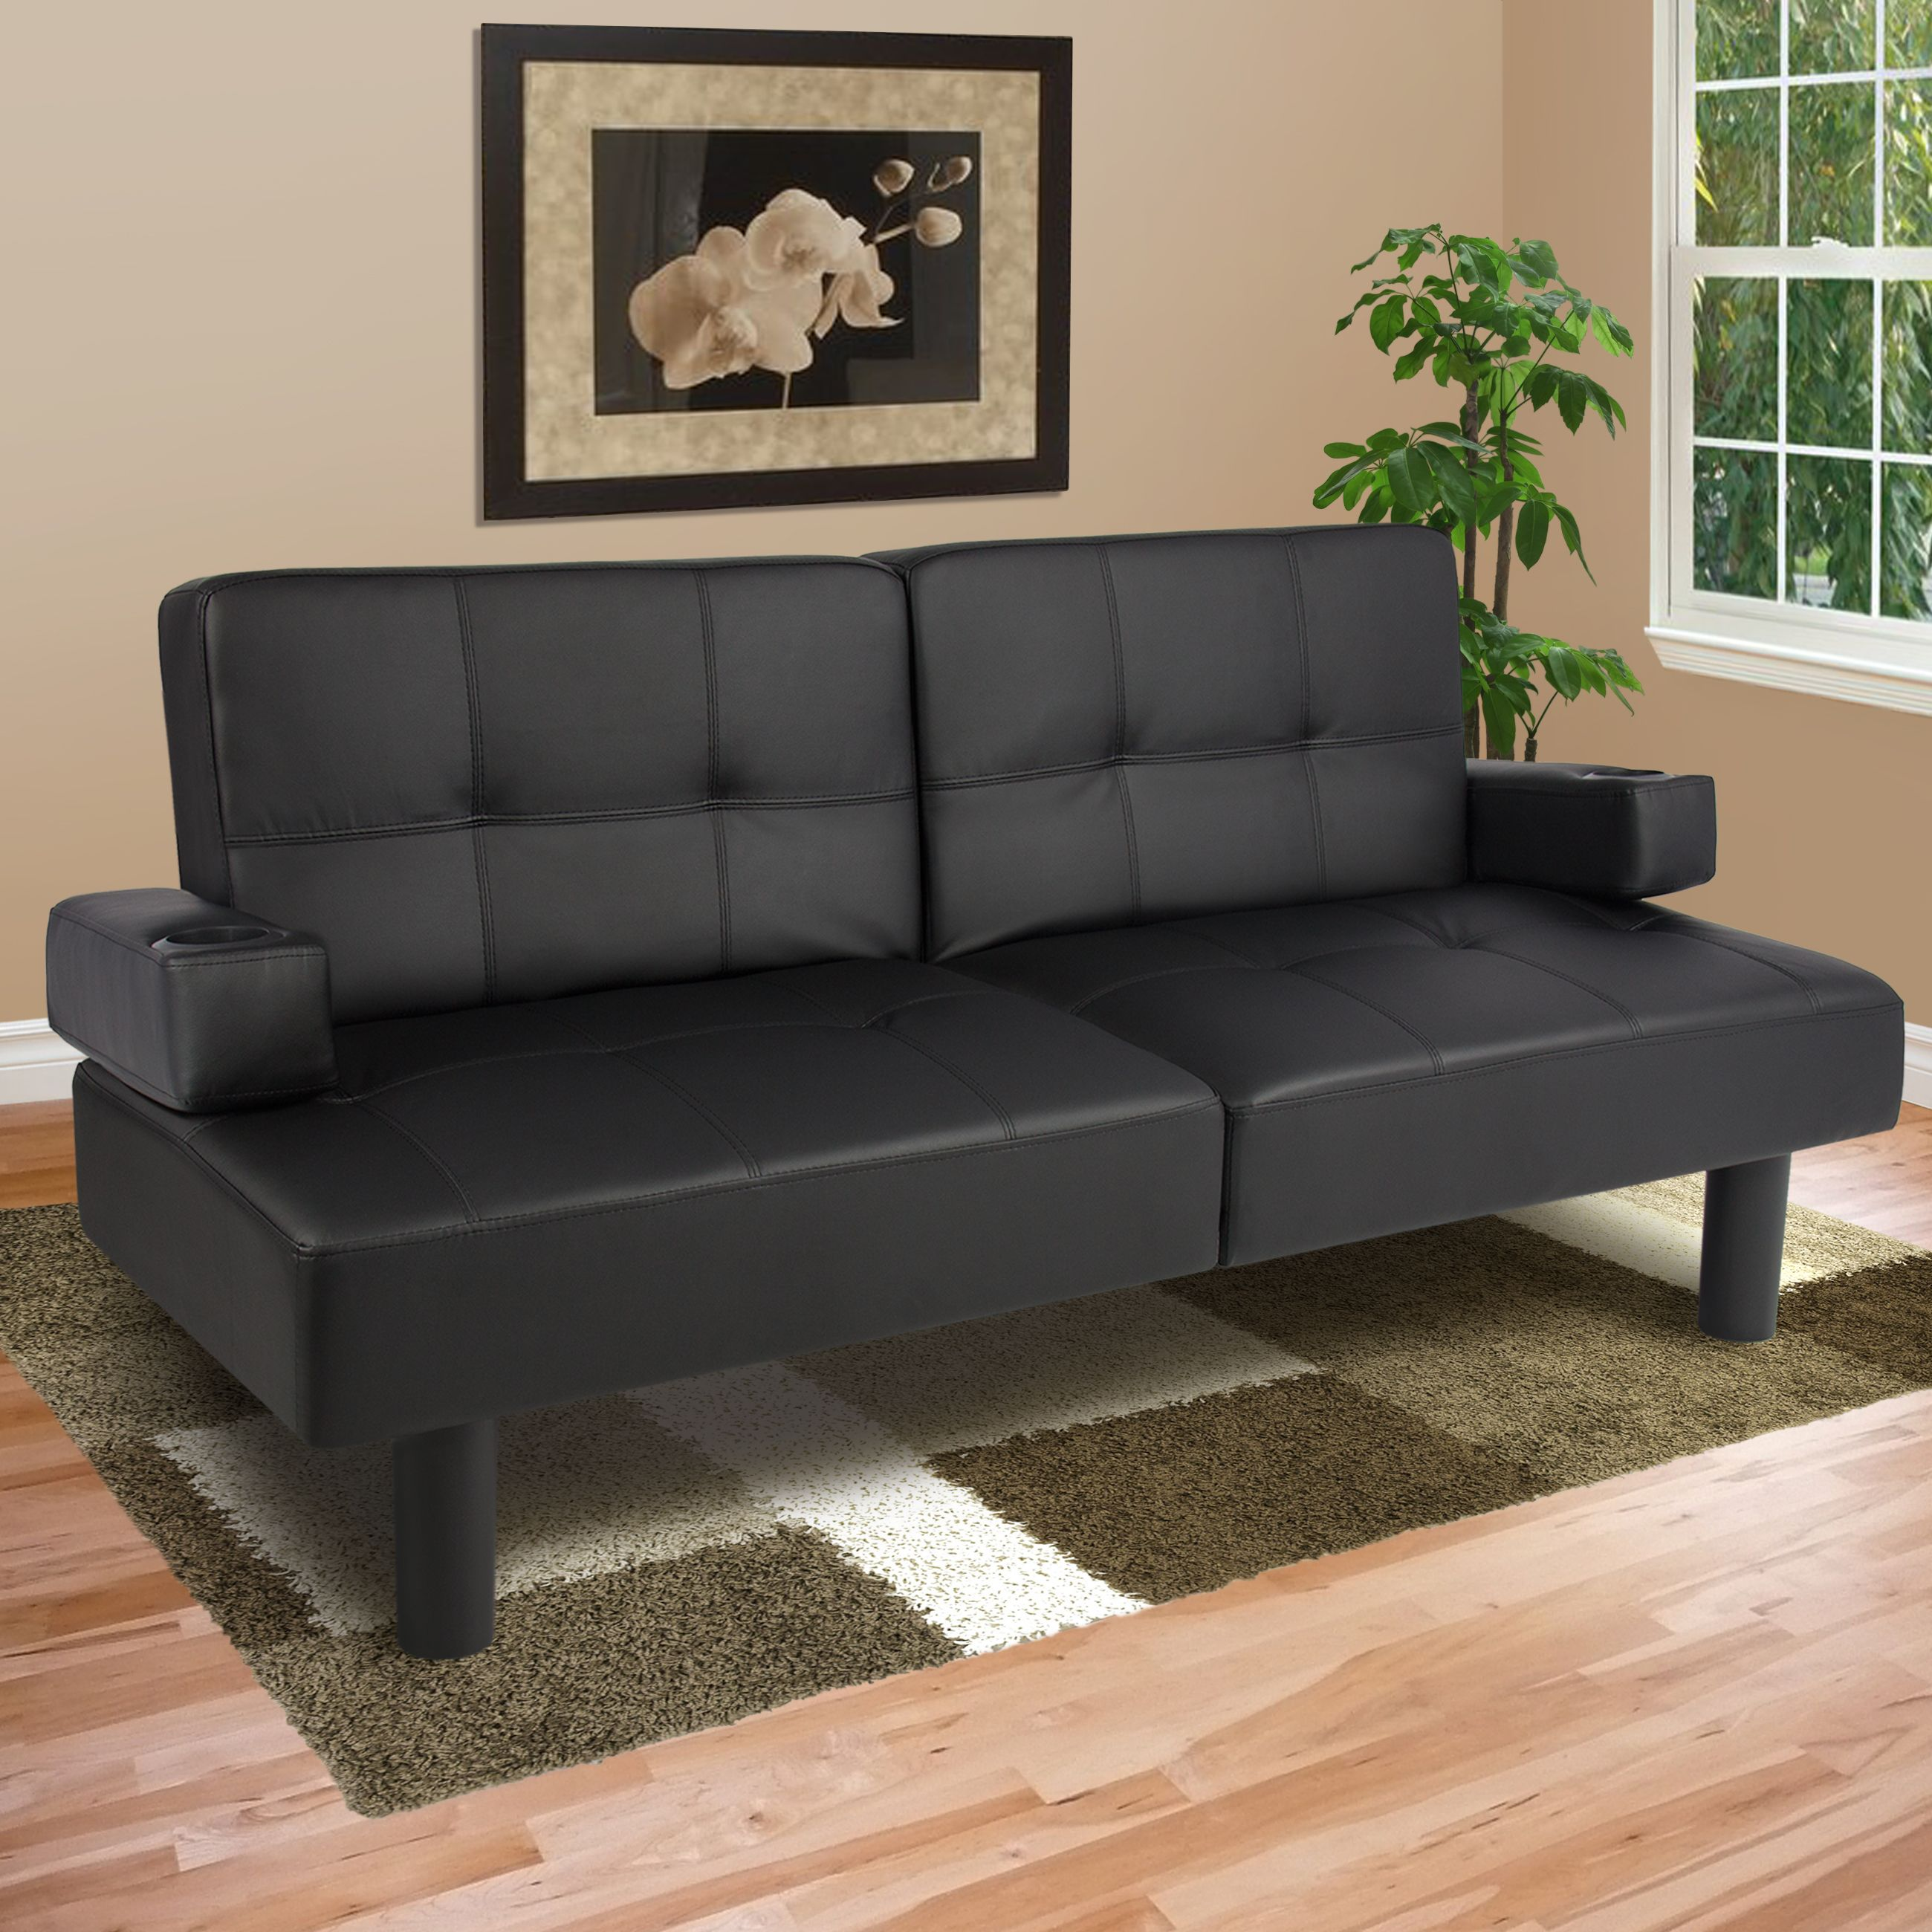 Sofa: Traditional Sectional Sleeper Sofa Tufted Sectional Sleeper Sofa Used  Sectional Sleeper Sofa Vision Sectional